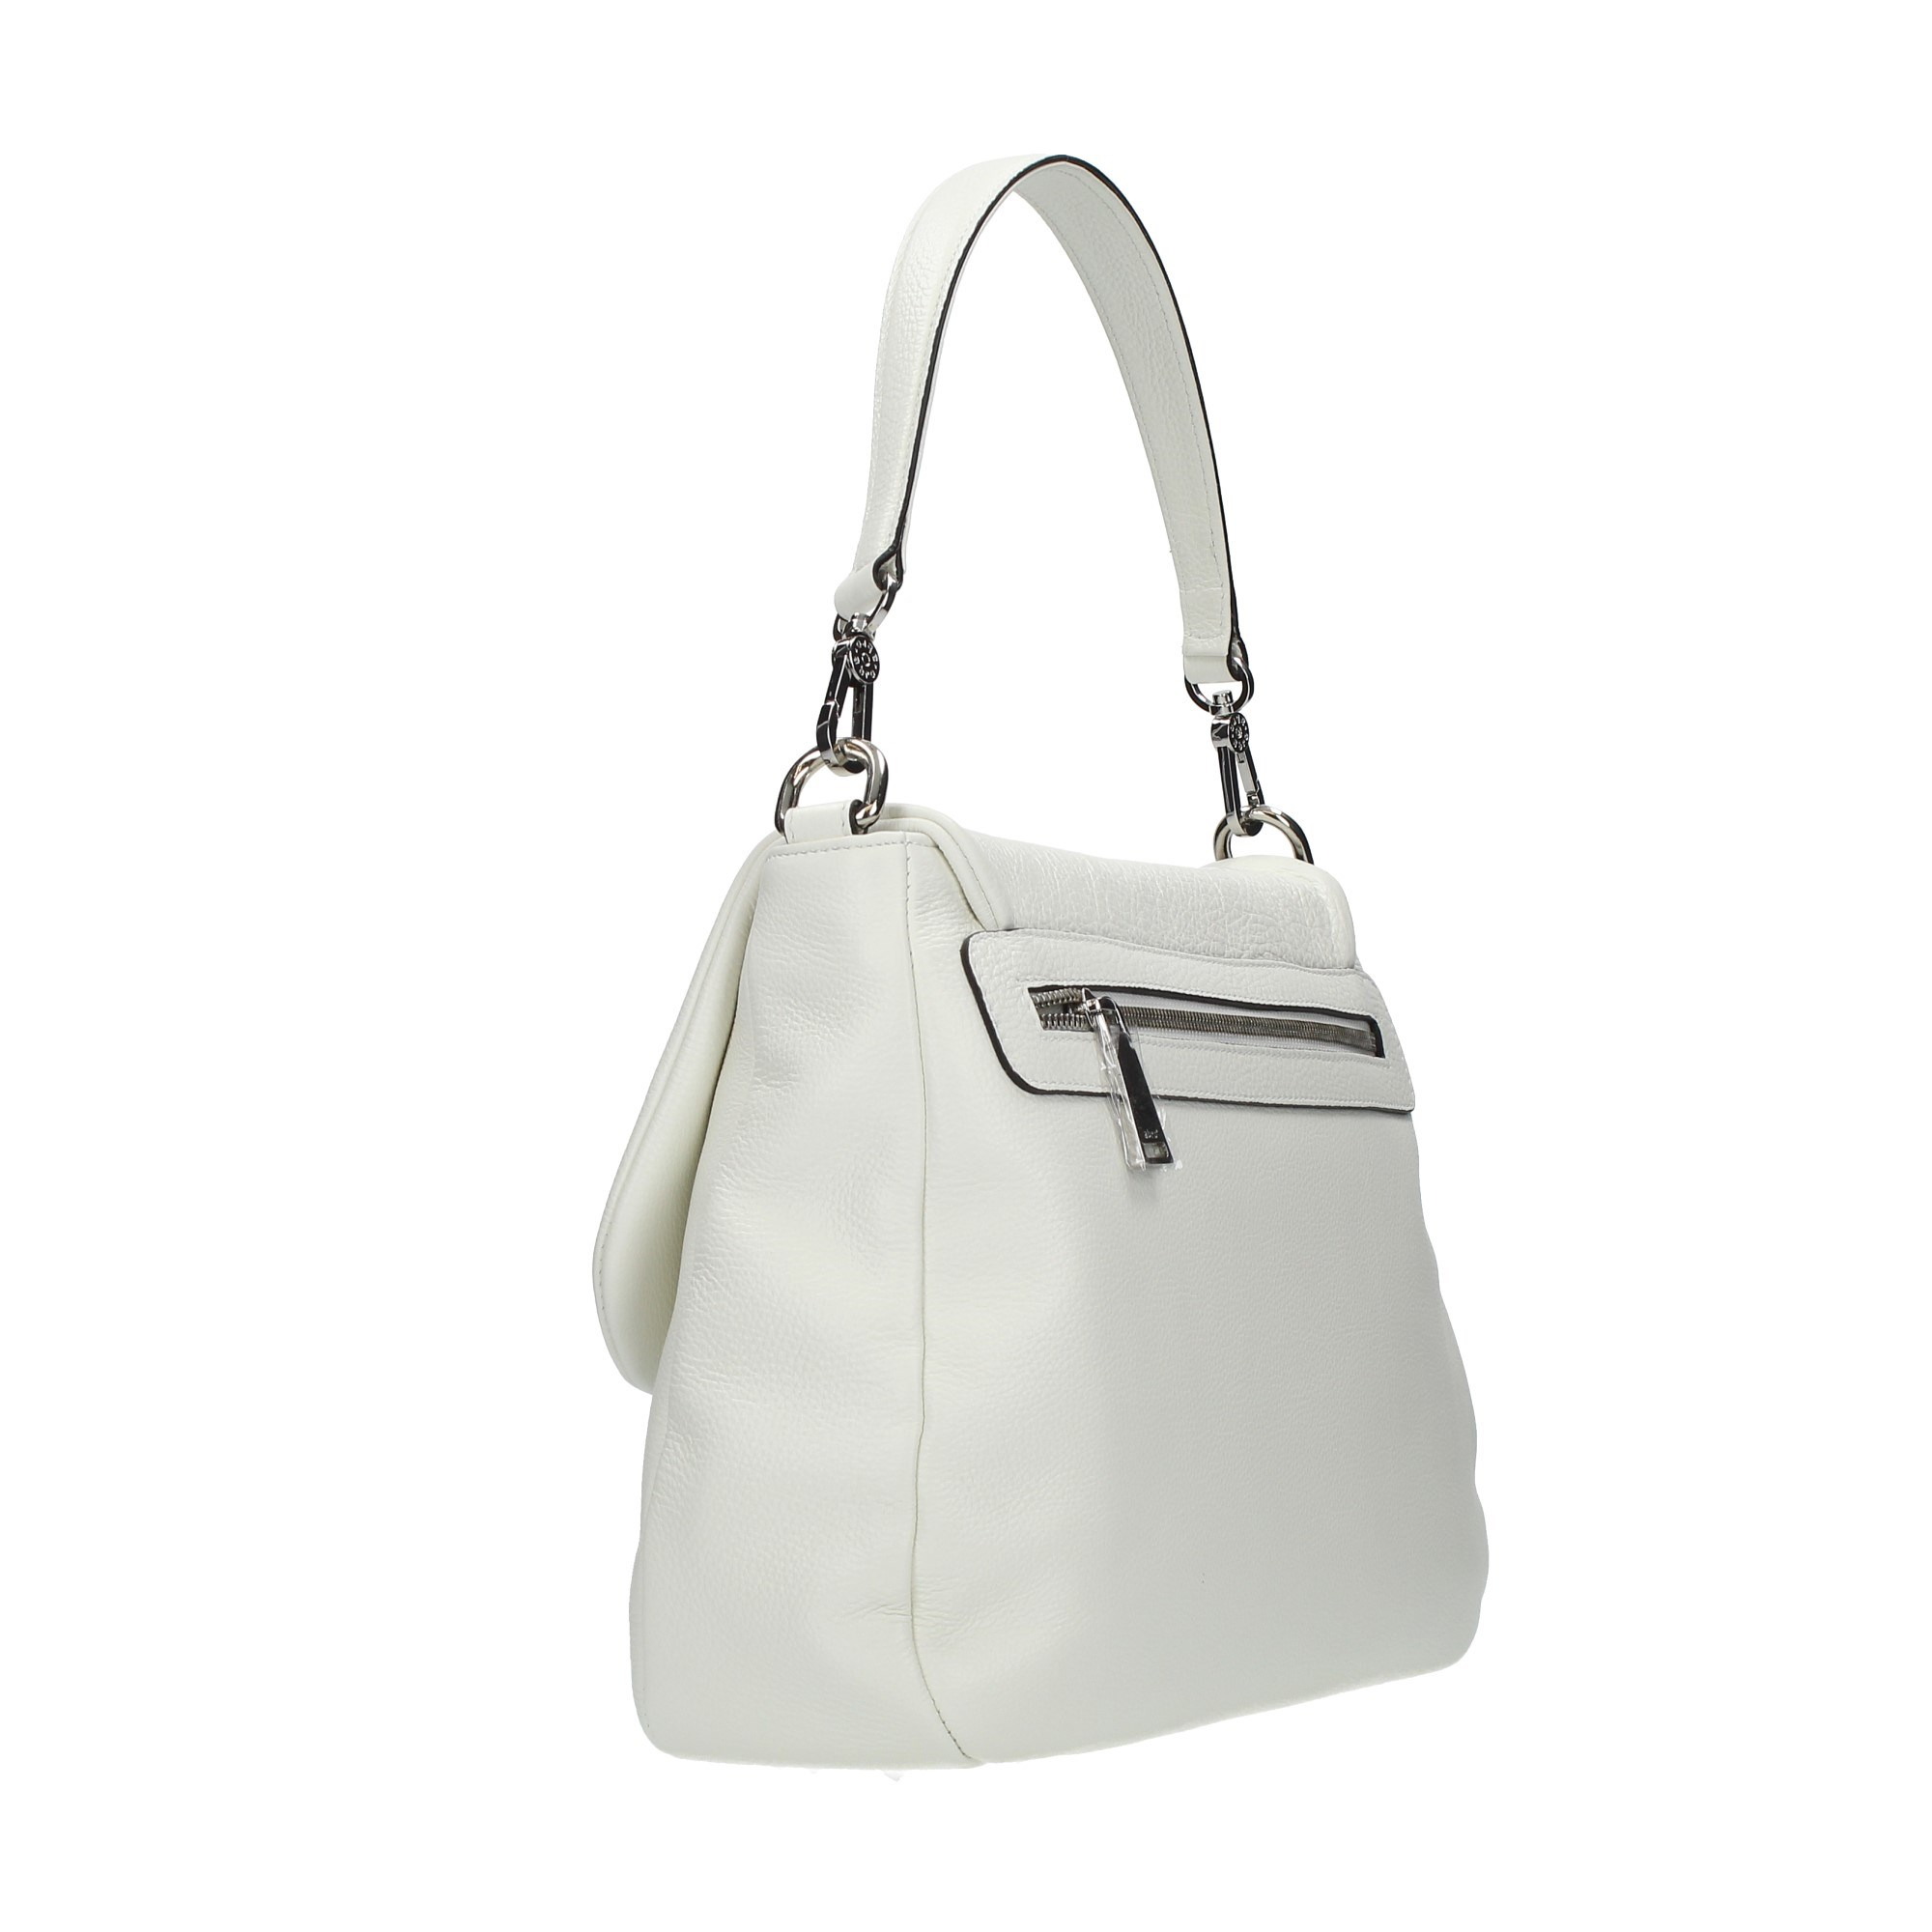 Abro Accessories Women Shoulder Bags White 29380-46